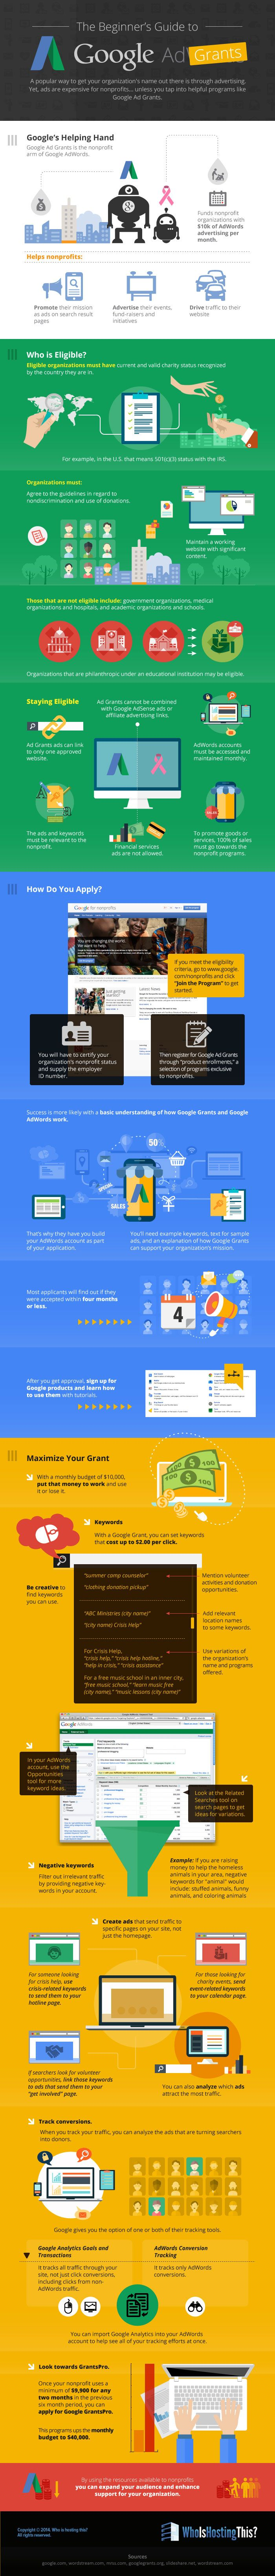 The Beginner's Guide to Google Ad Grants #infographic #Advertising #Google #NonProfit